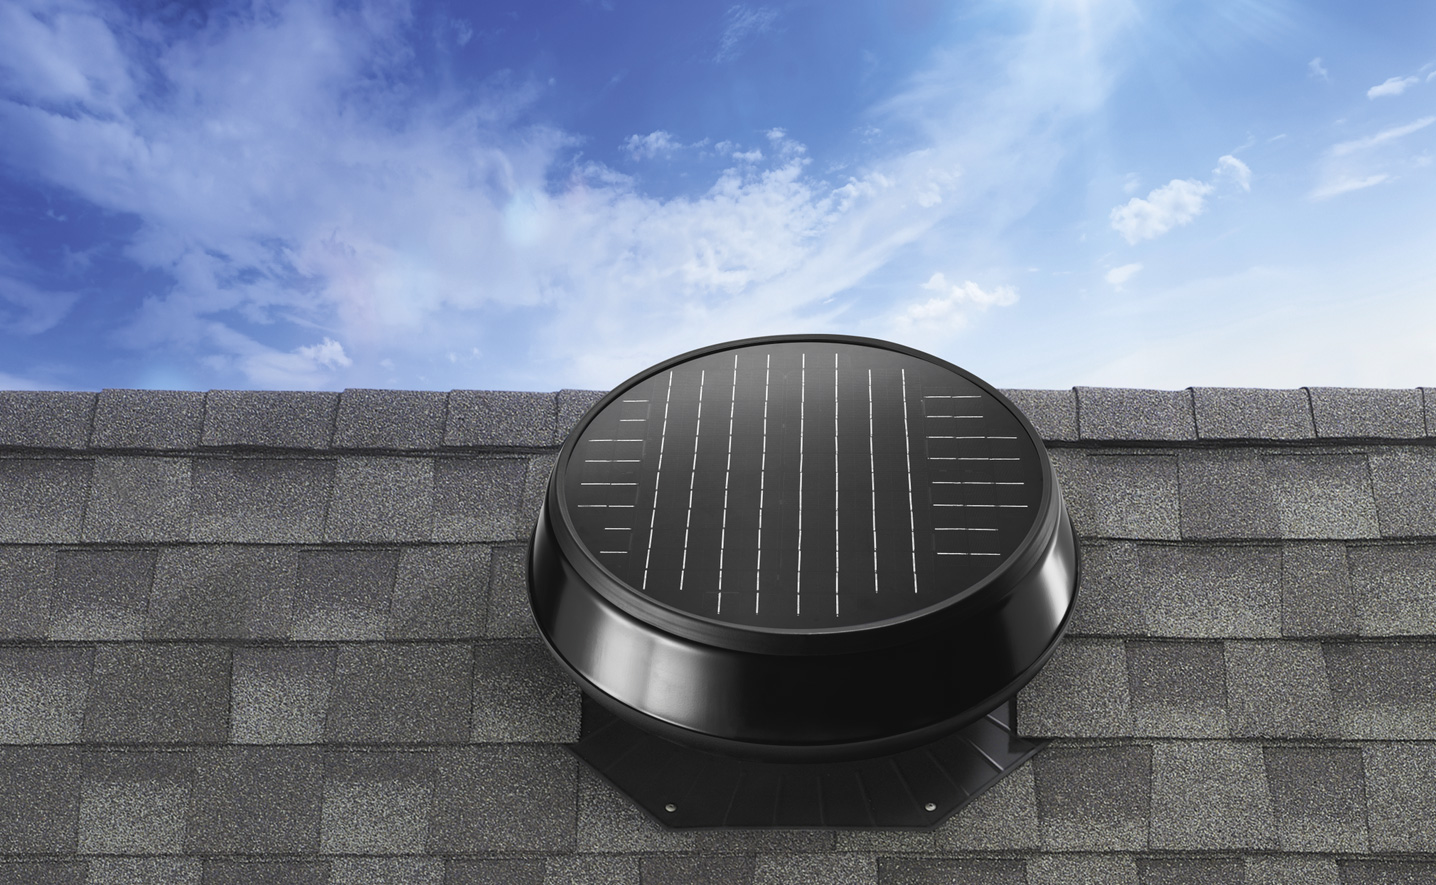 Image of a solar powered attic fan.